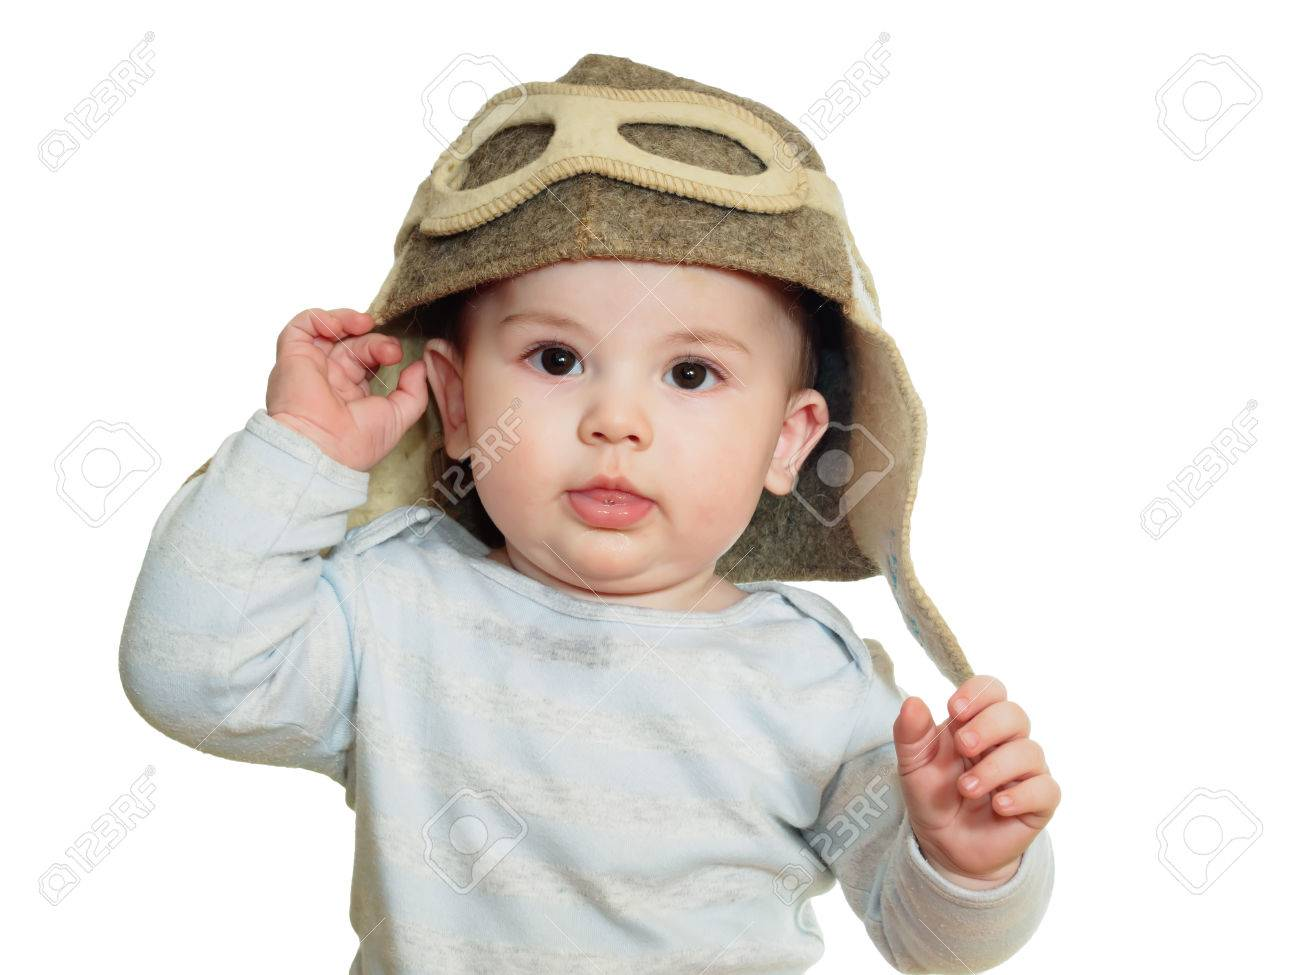 Caucasian baby boy in pilot hat isolated on white Stock Photo - 37734454 deaf46177fe